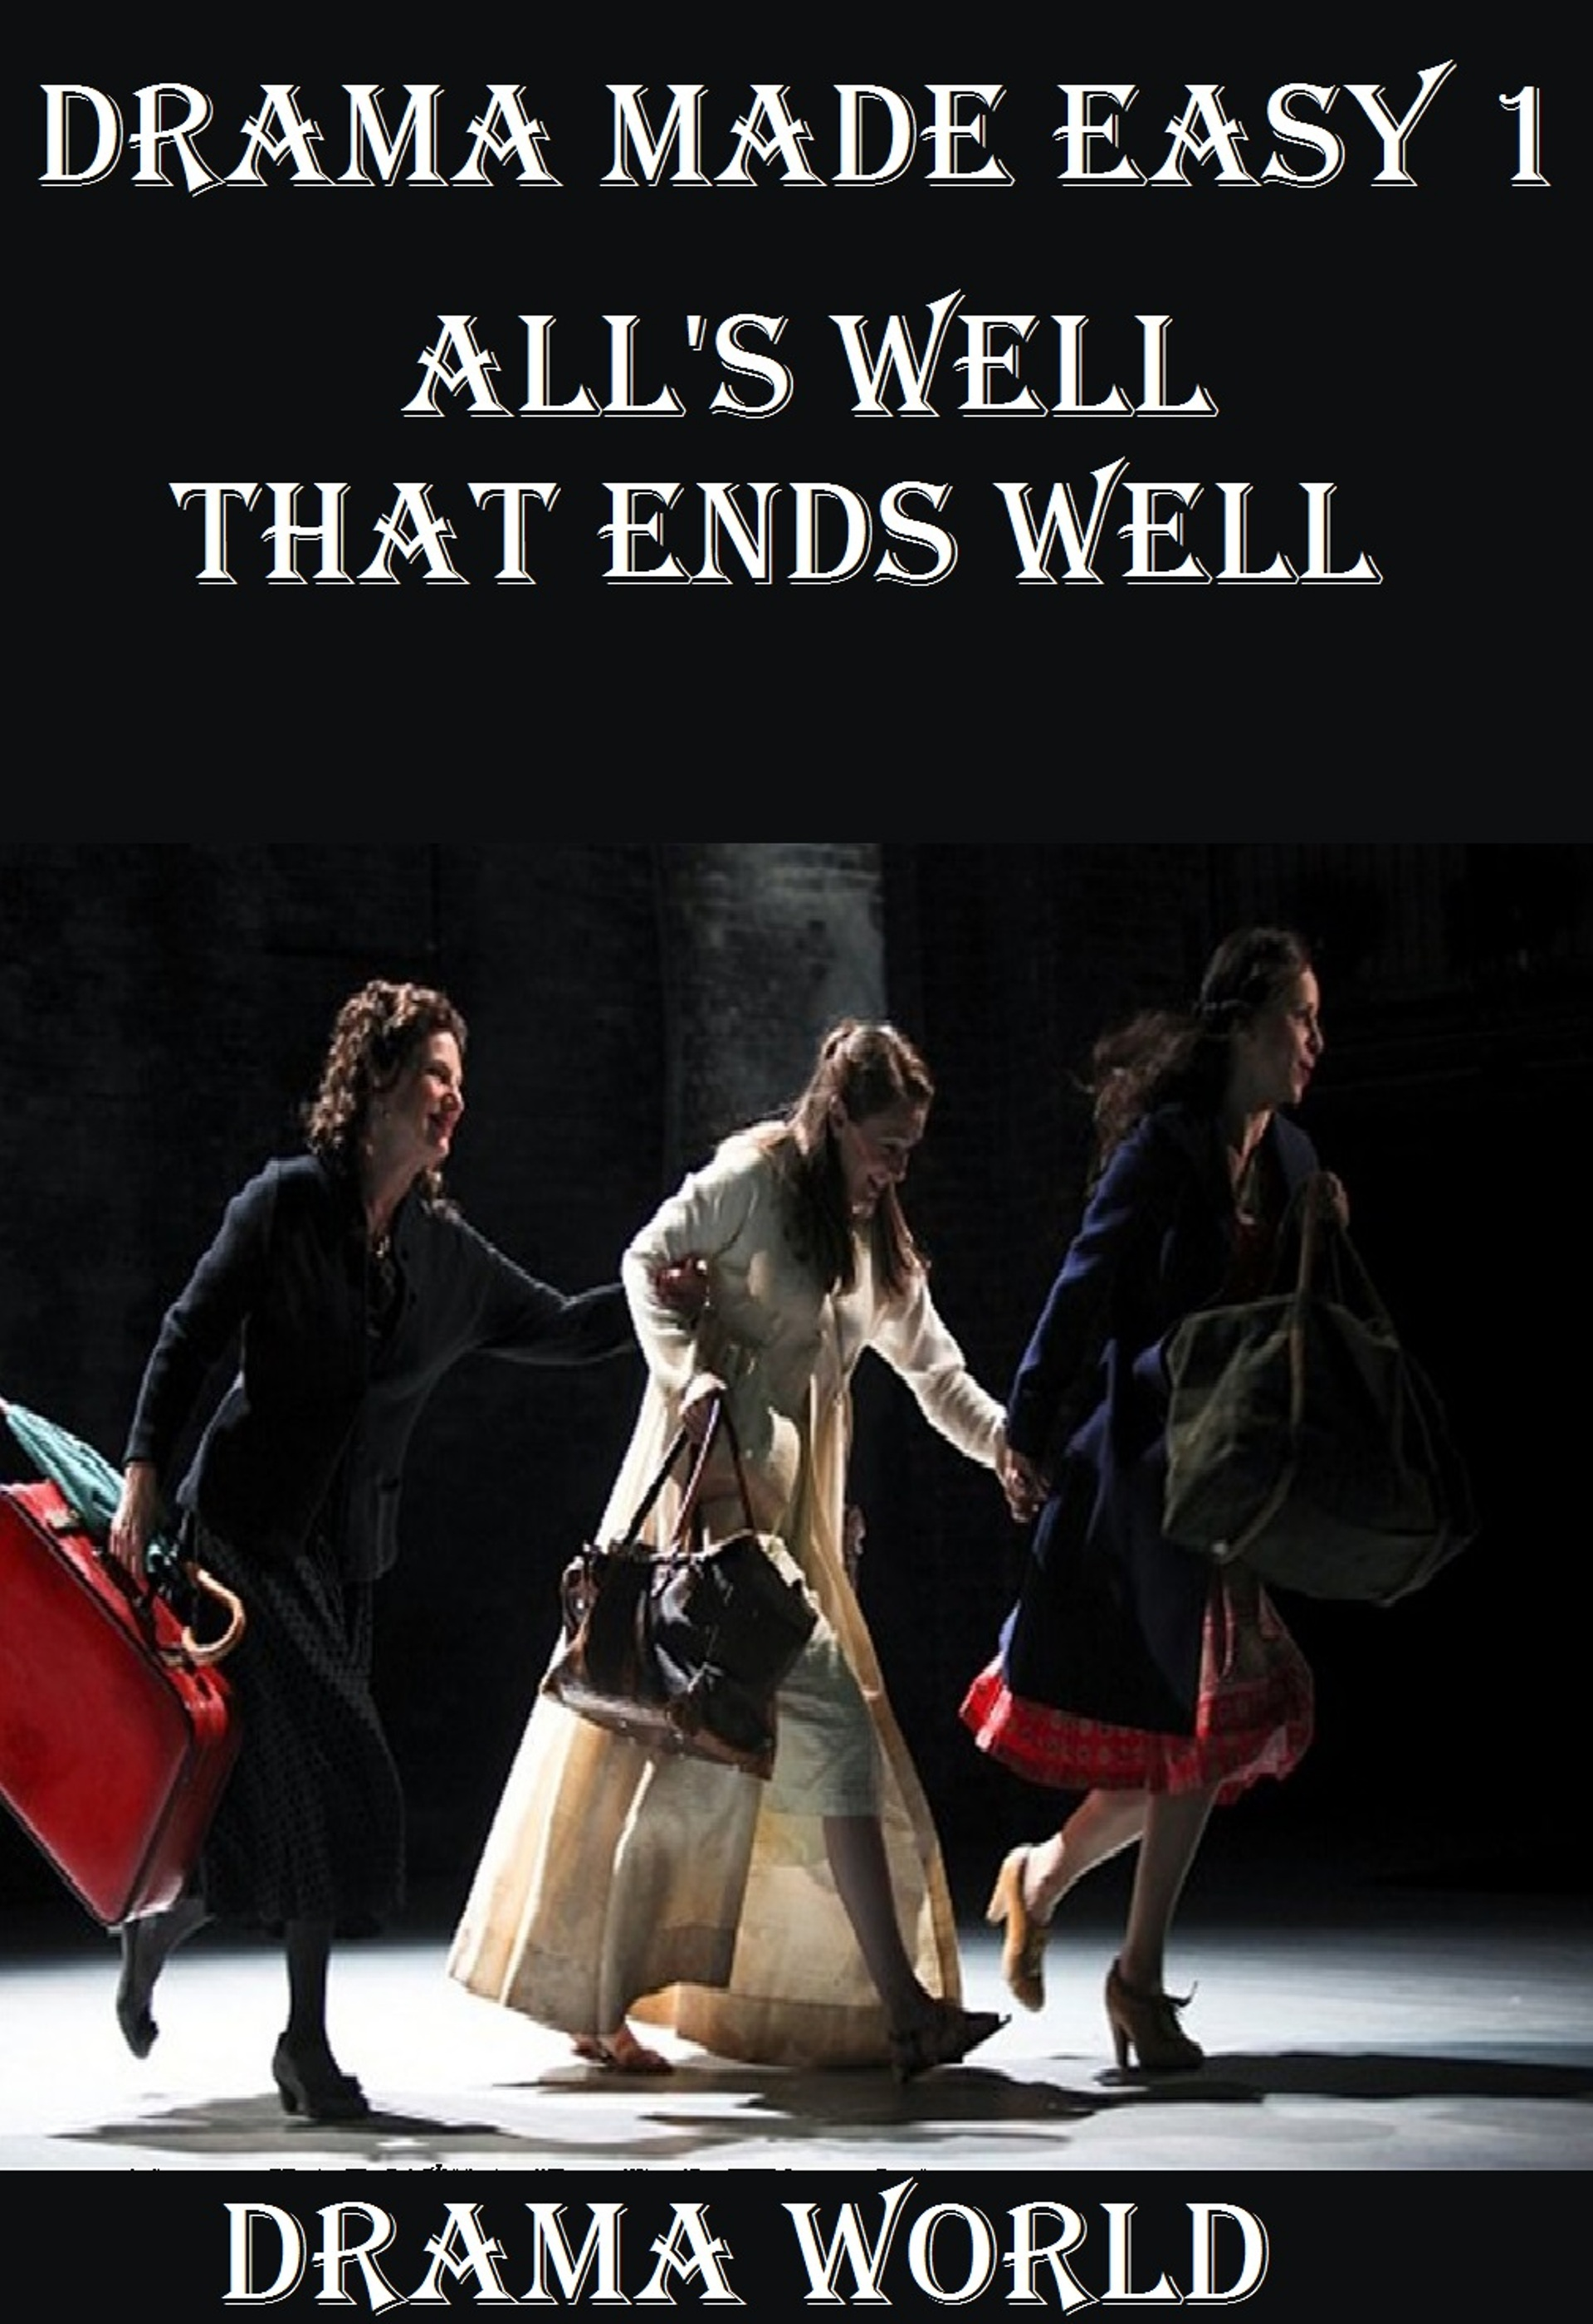 a literary analysis of the play alls well that ends well